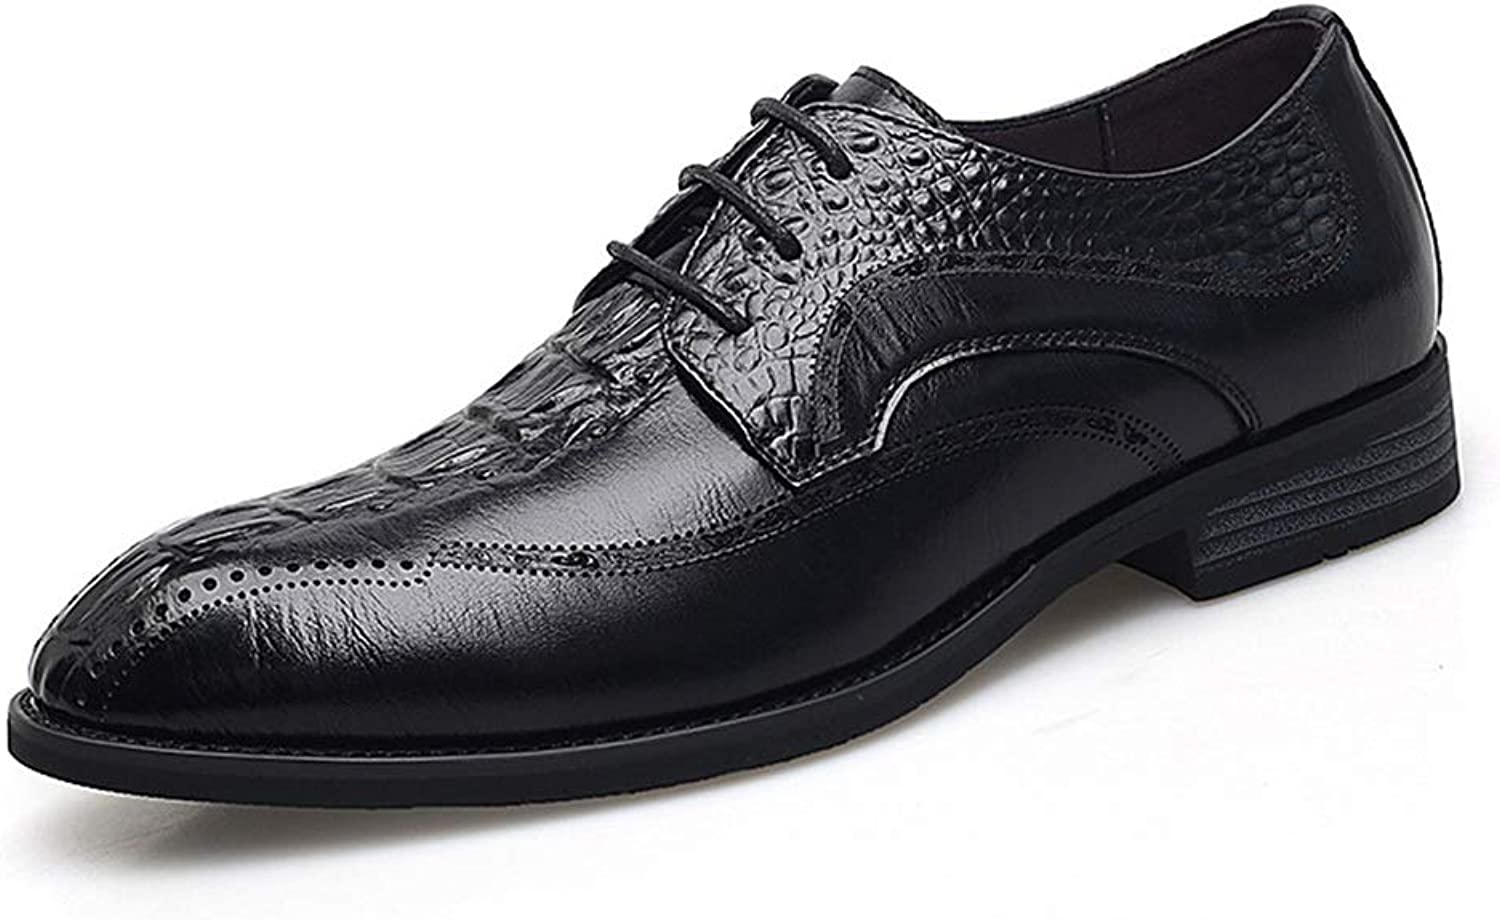 Williess Men's Business Casual shoes Low to Help Leather Single shoes Leather Men's shoes shoes (color   Black, Size   42)